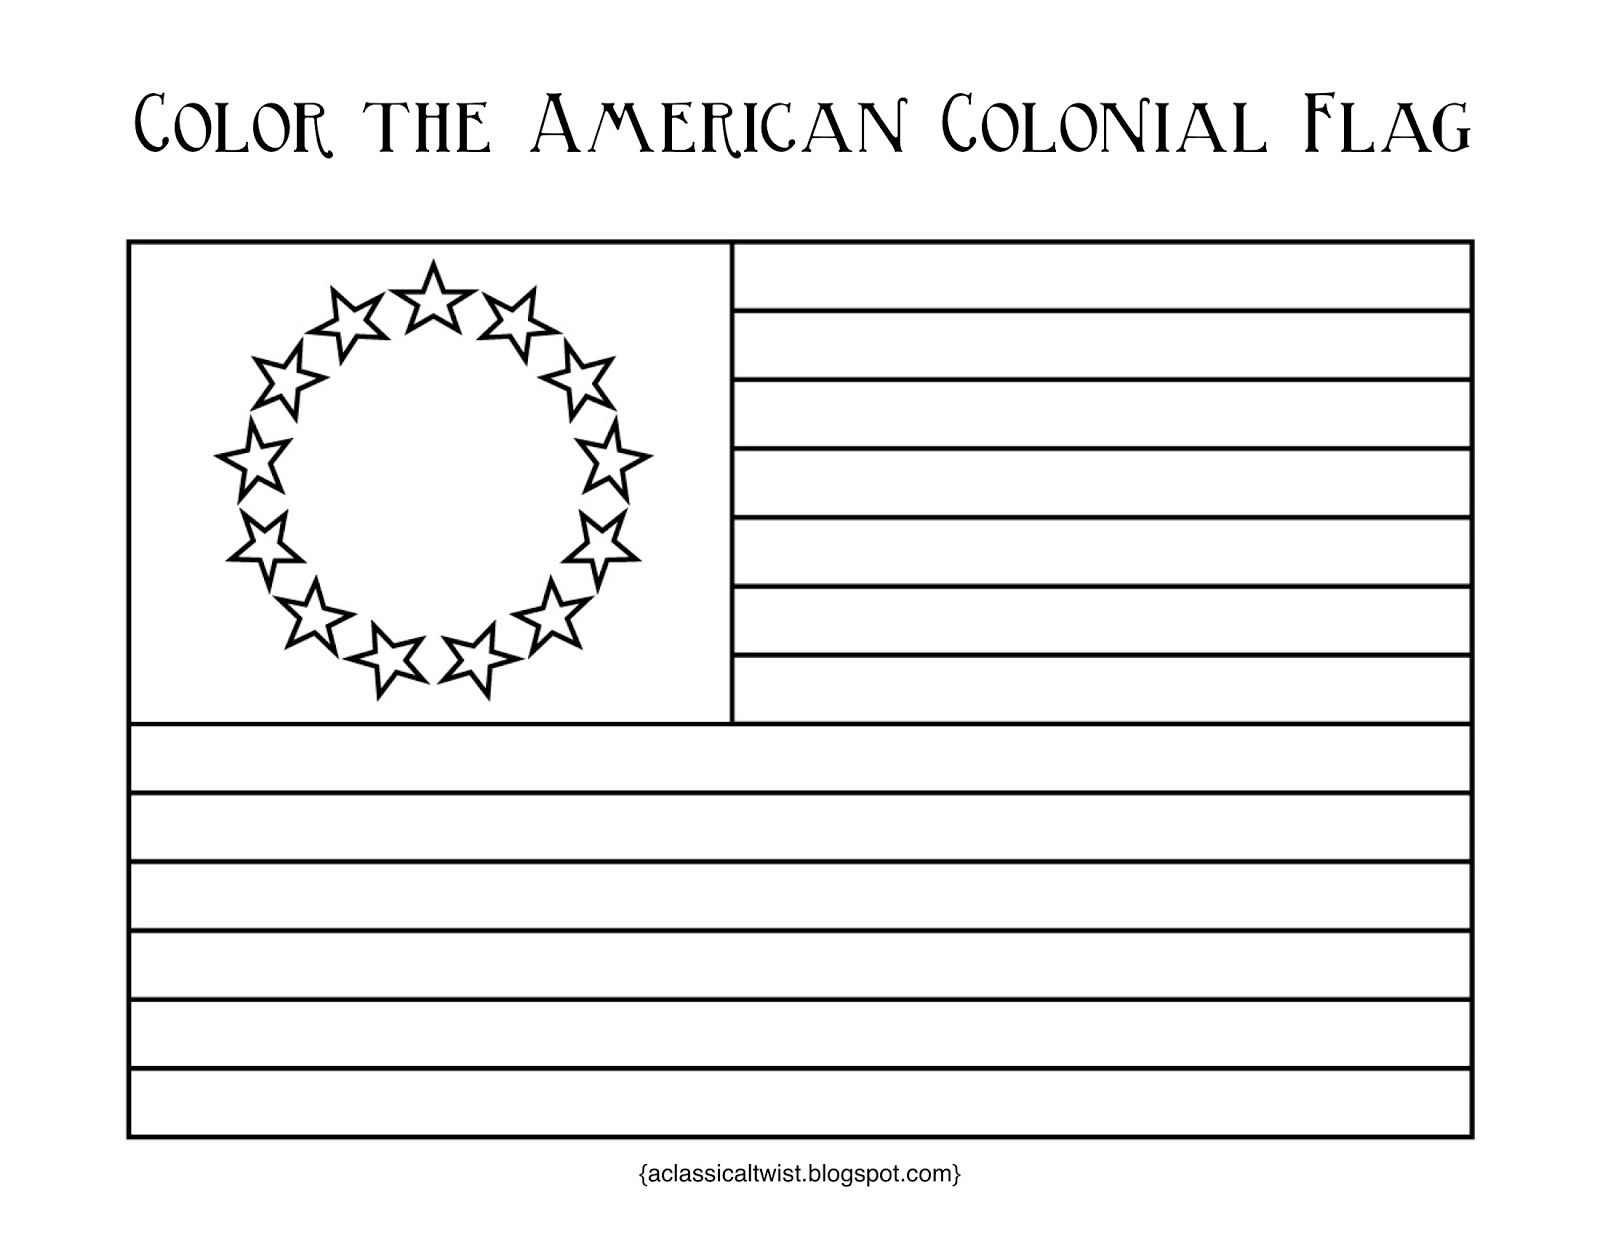 Worksheets 13 Colonies Worksheets homeschooling with a classical twist original 13 colonies and colonial flag printable